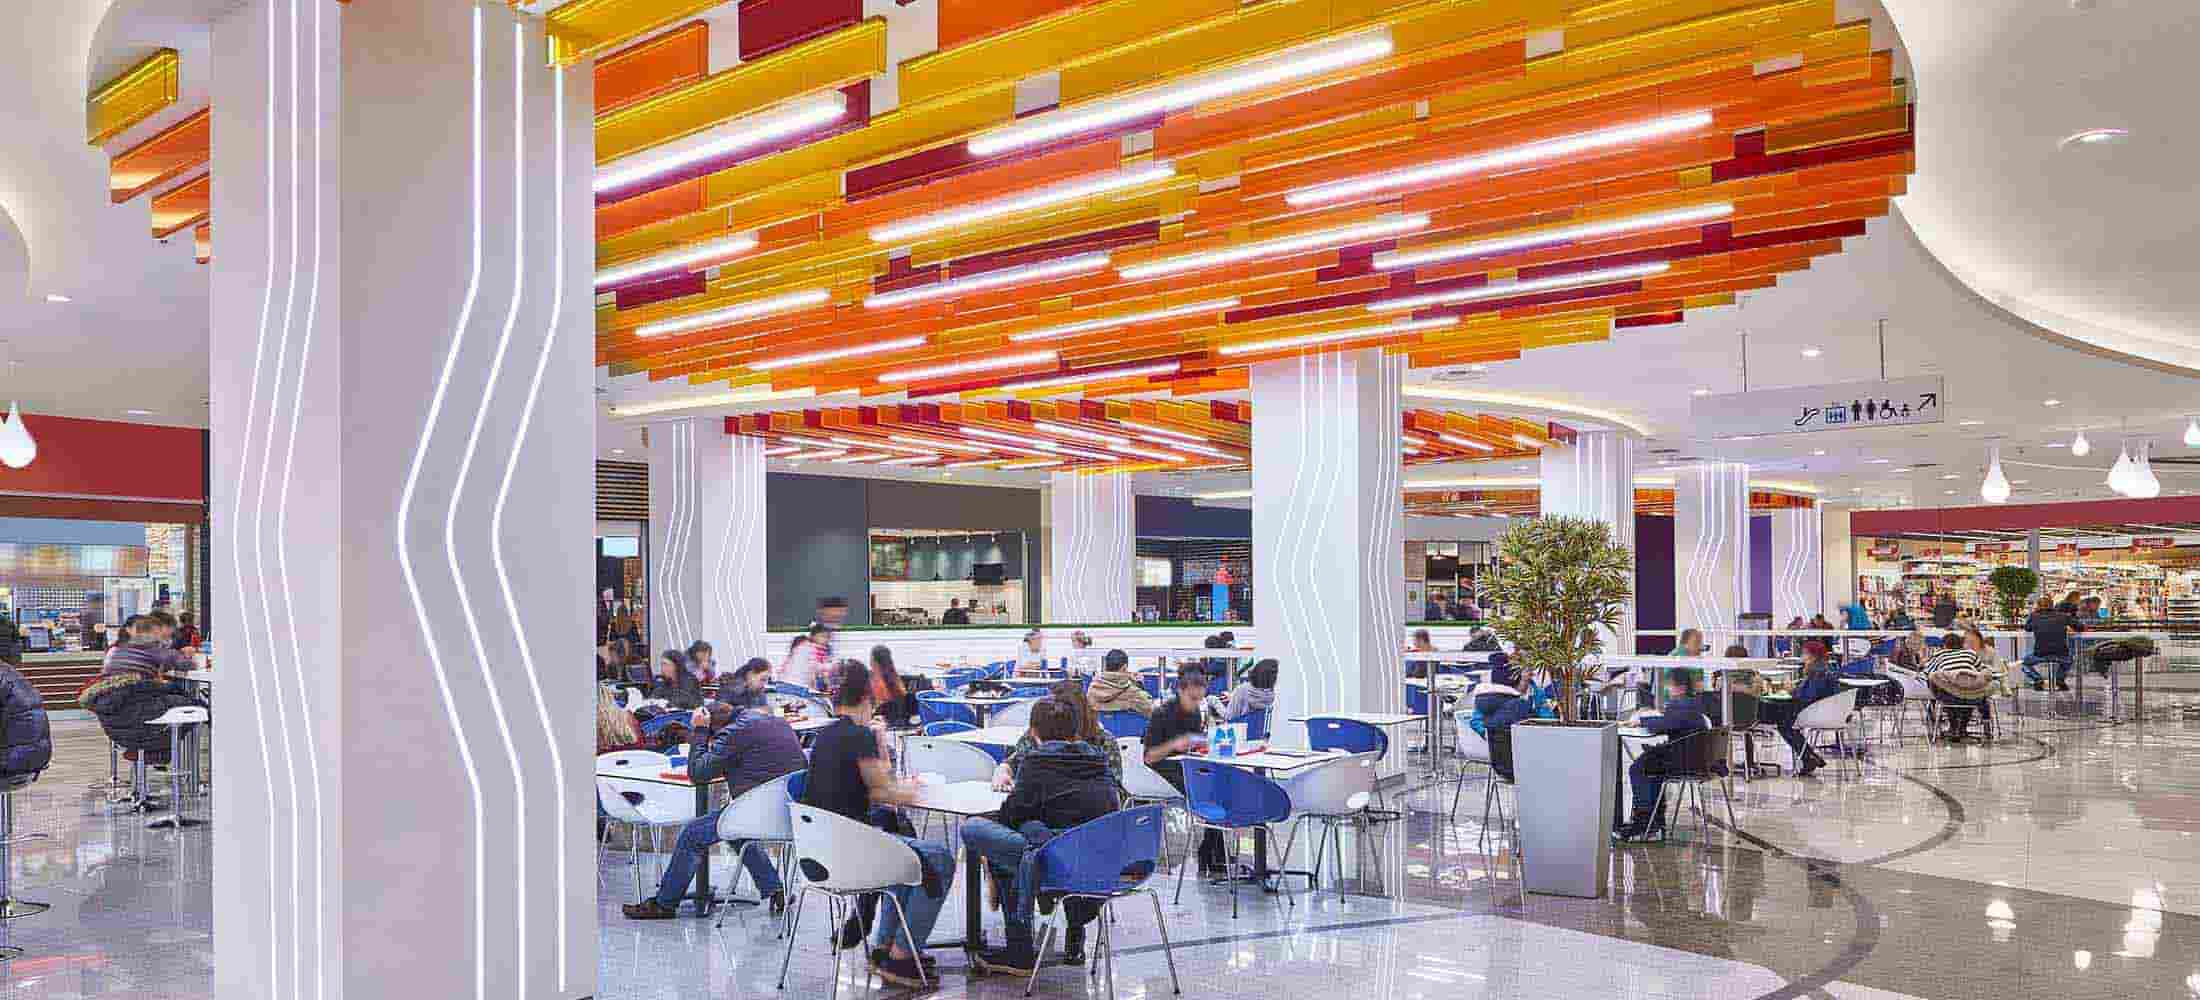 modern food court in shopping mall